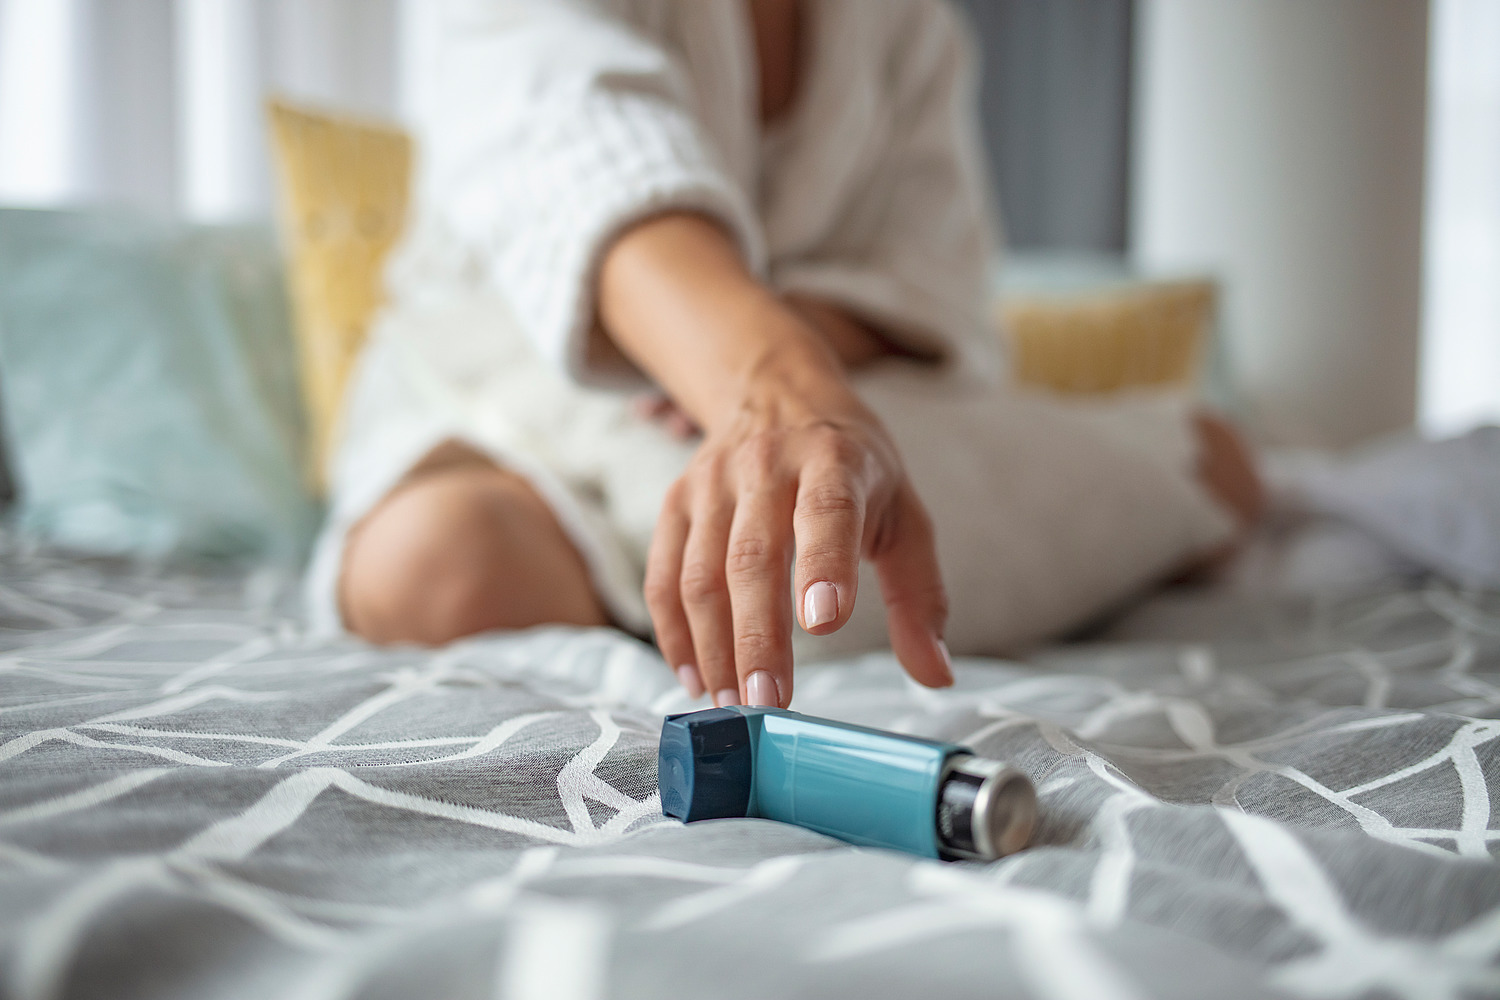 Girl suffering asthma attack reaching inhaler sitting on a bed in the bedroom at home. Woman Hand Reaching Inhaler Because She Suffering From Asthma Attack